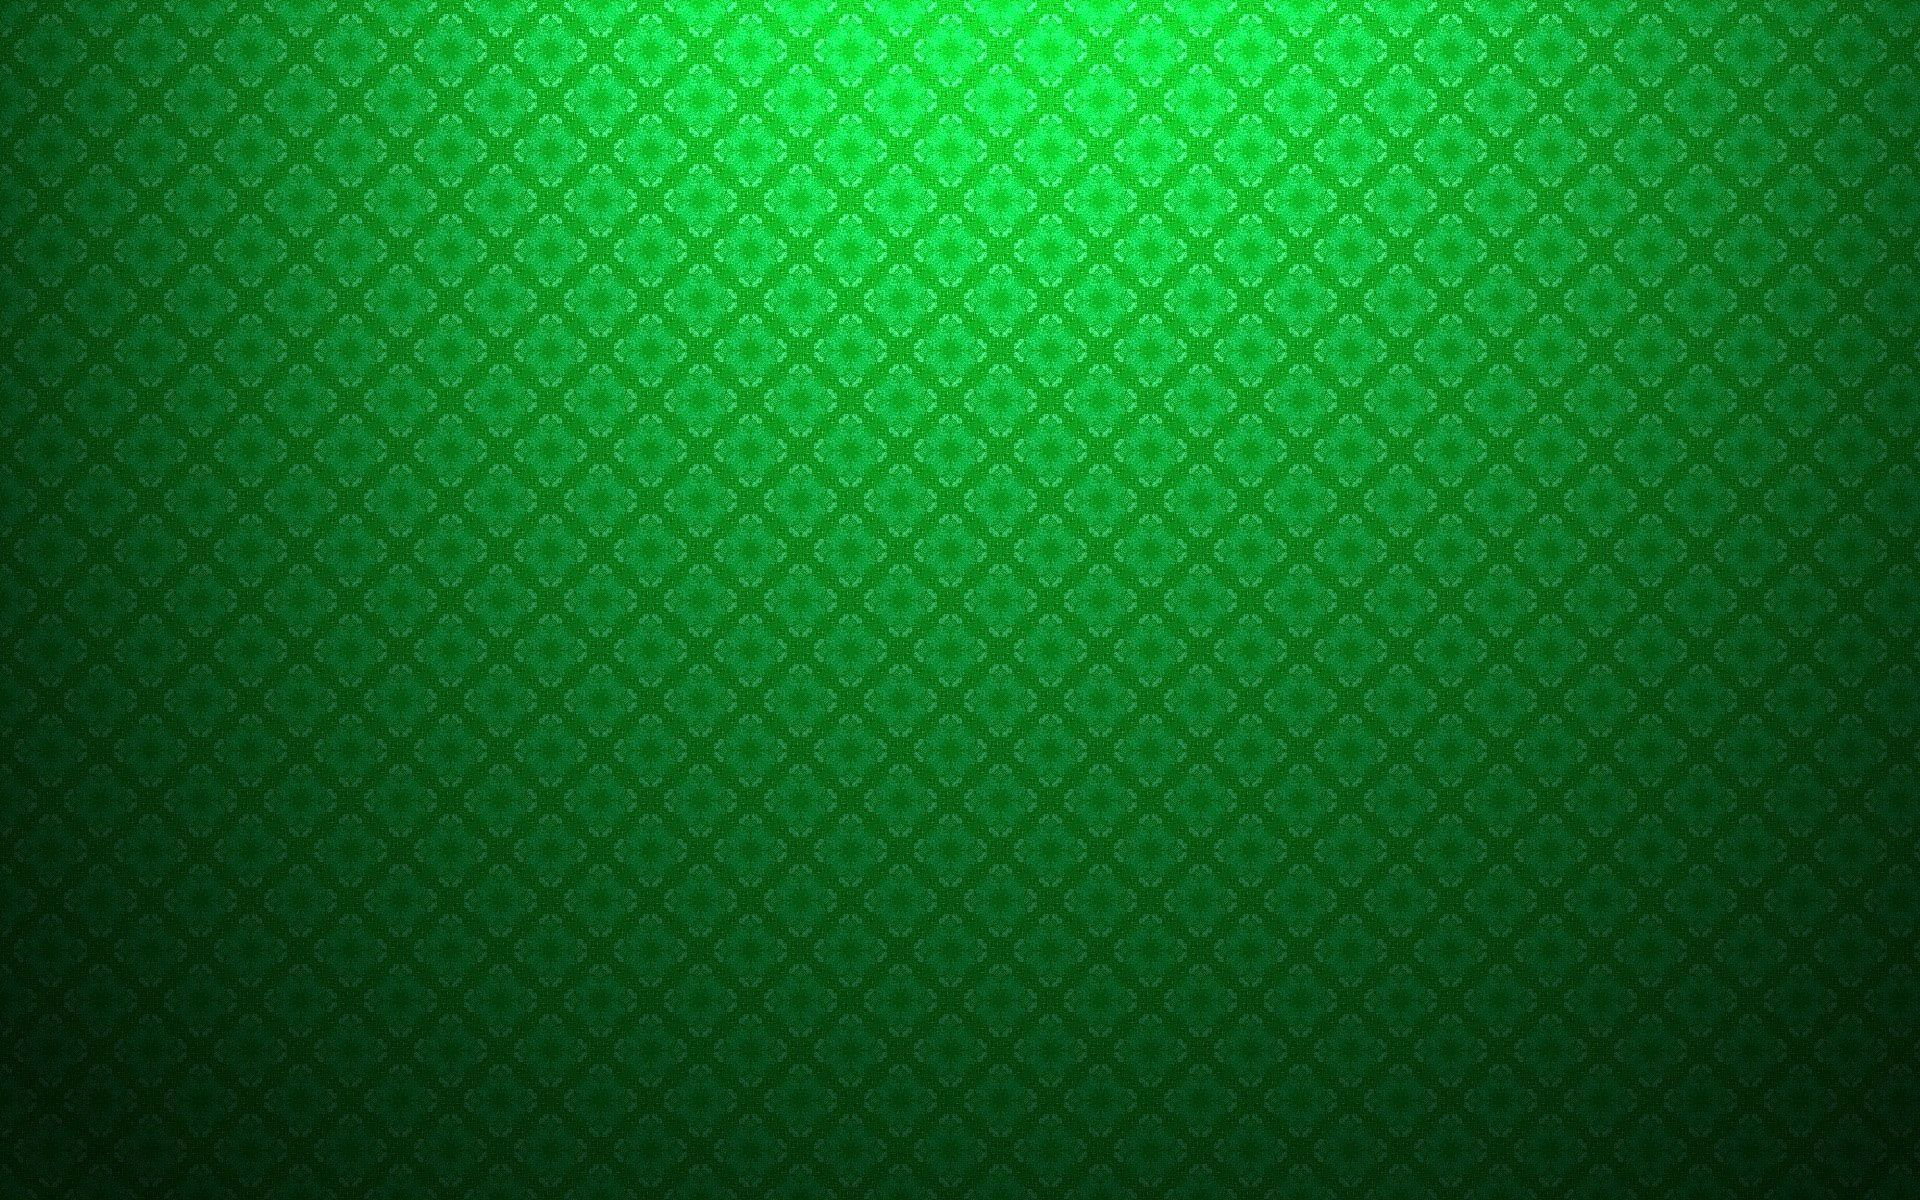 green wallpaper design hd - photo #28